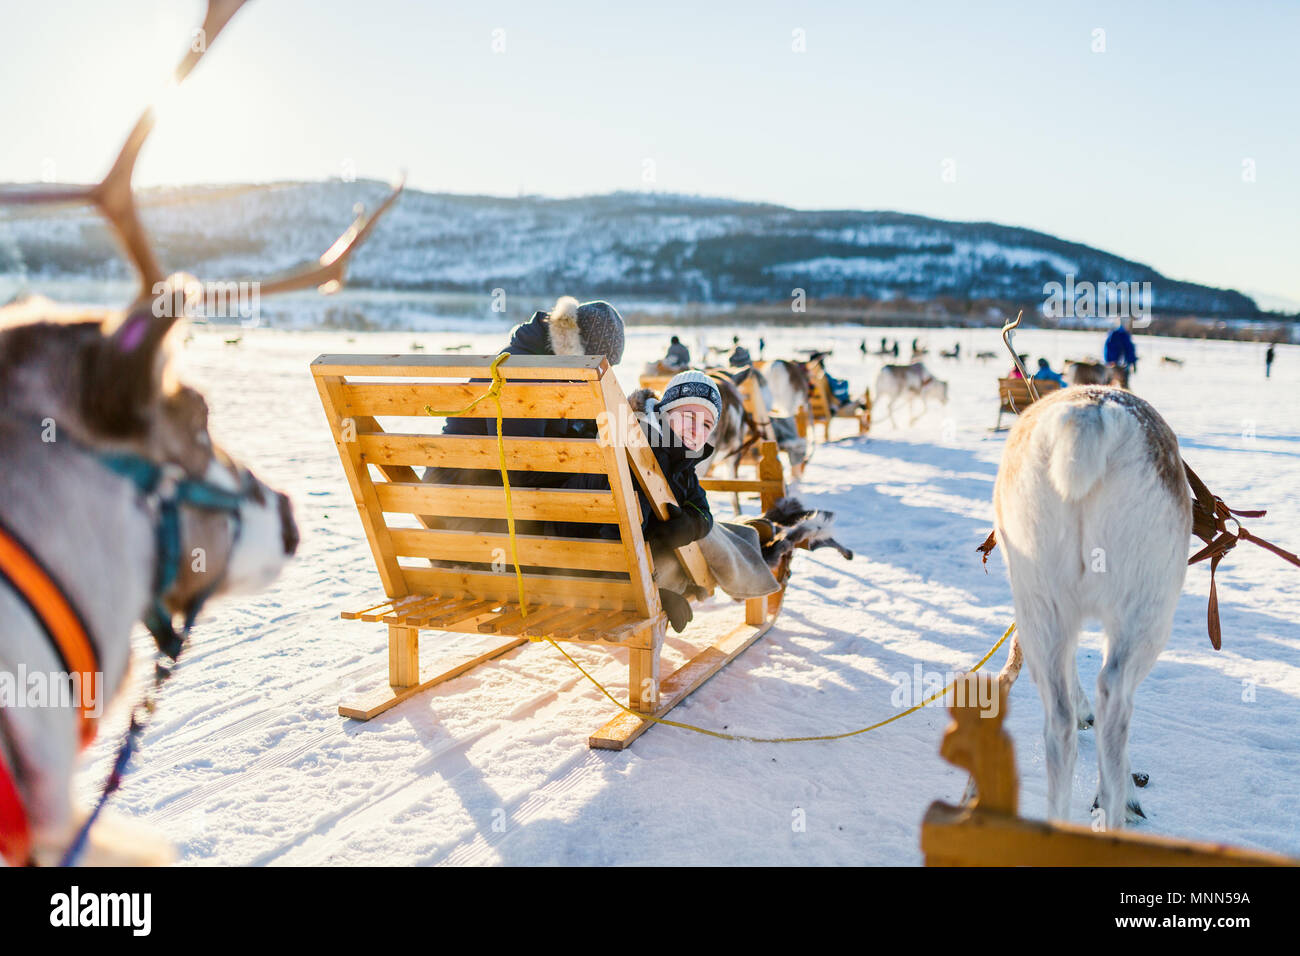 Teenage boy and his family sledding at reindeer safari on sunny winter day in Northern Norway - Stock Image